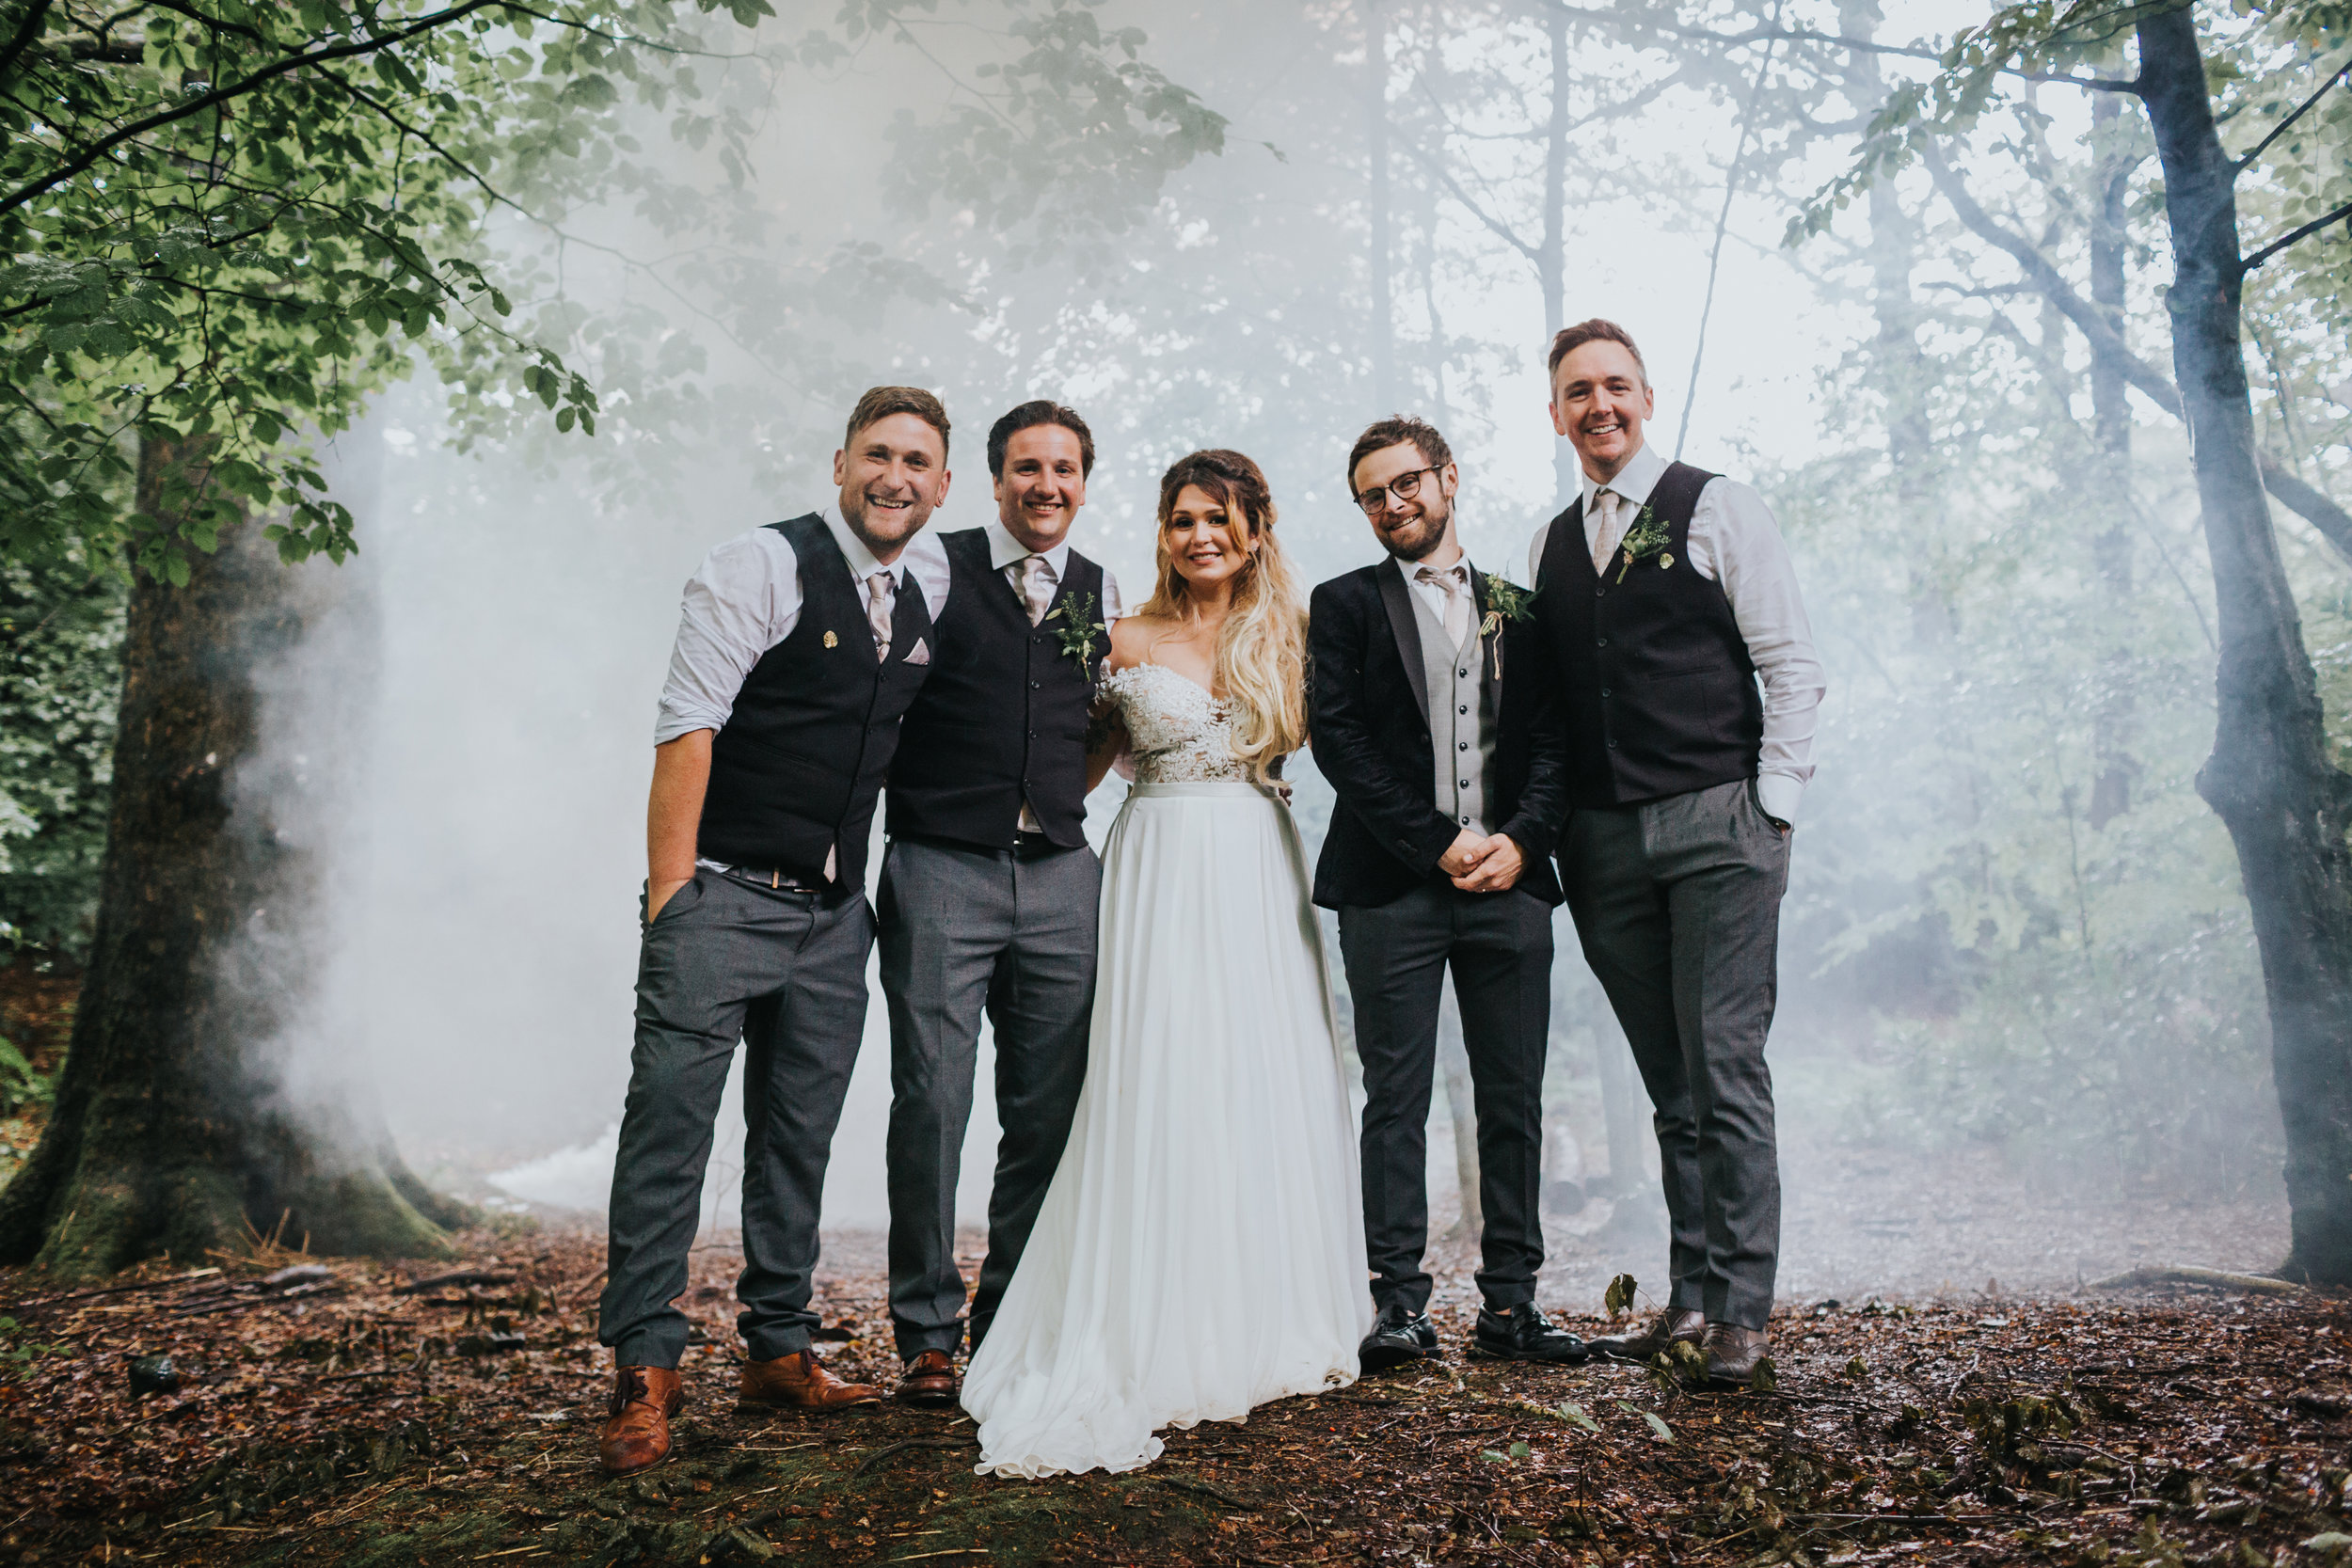 Bride and groom stand with grooms men in front of mist.